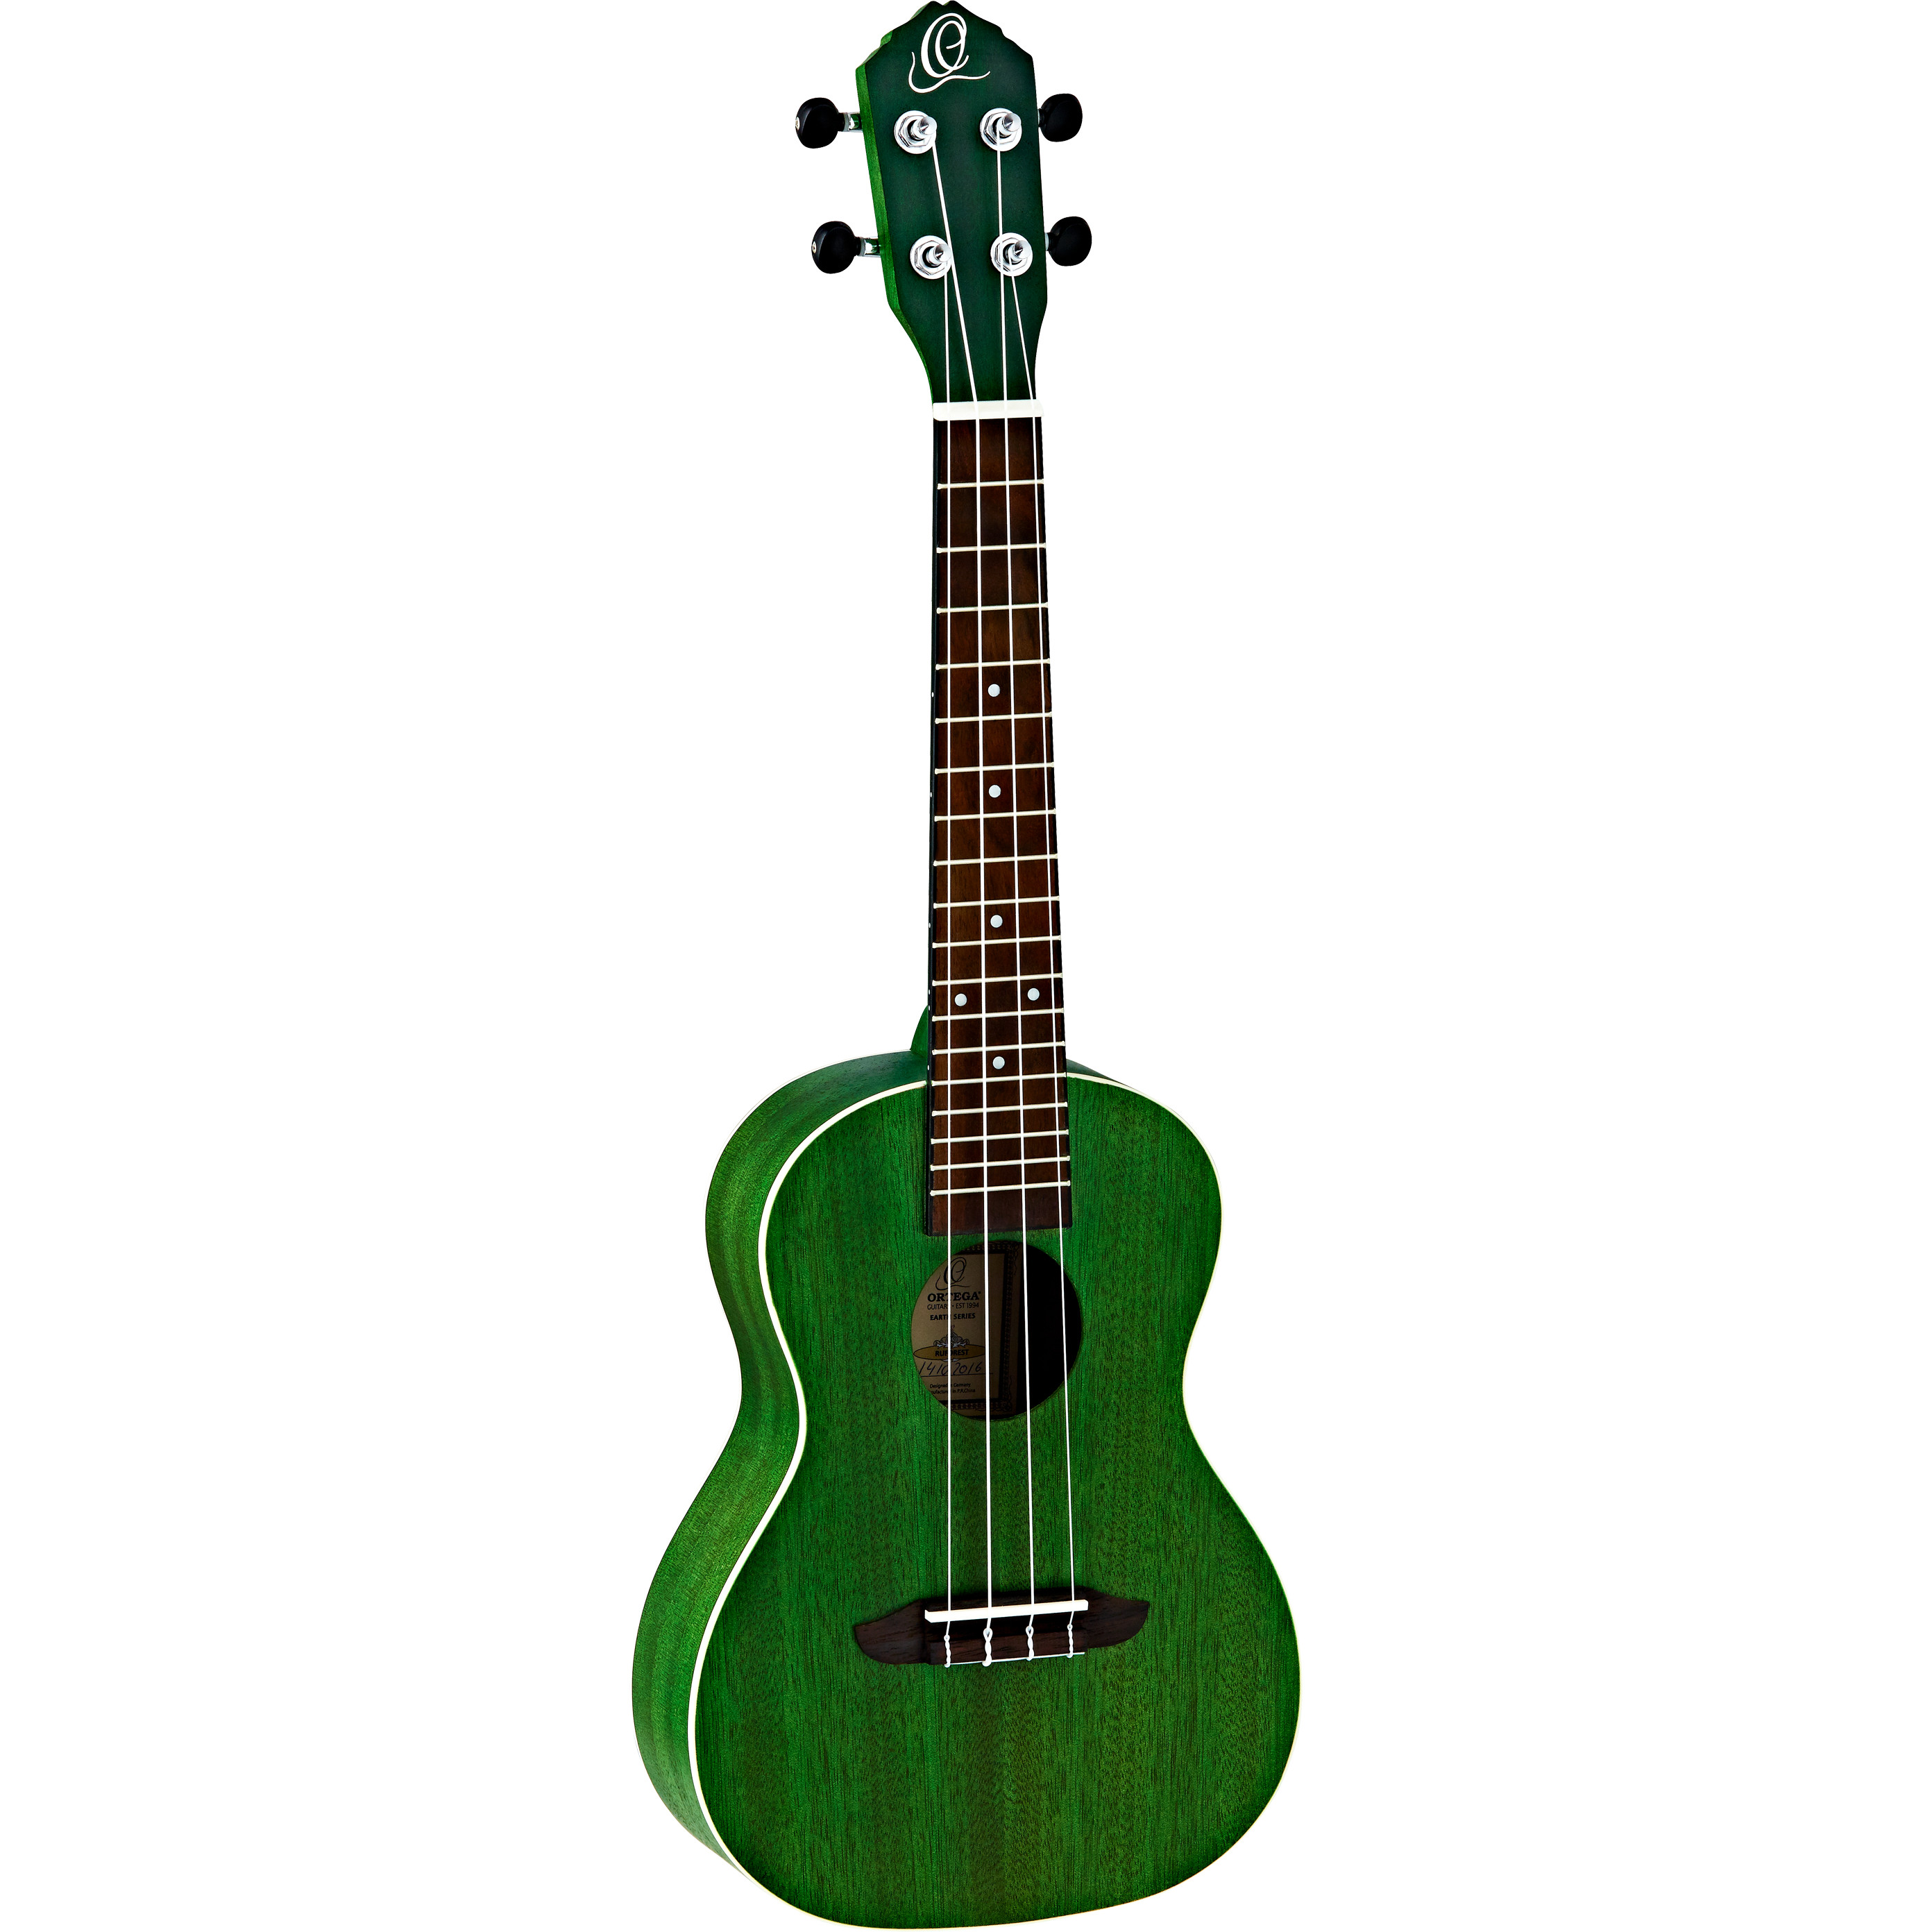 Ortega Earth Series RUFOREST concert ukulele, green